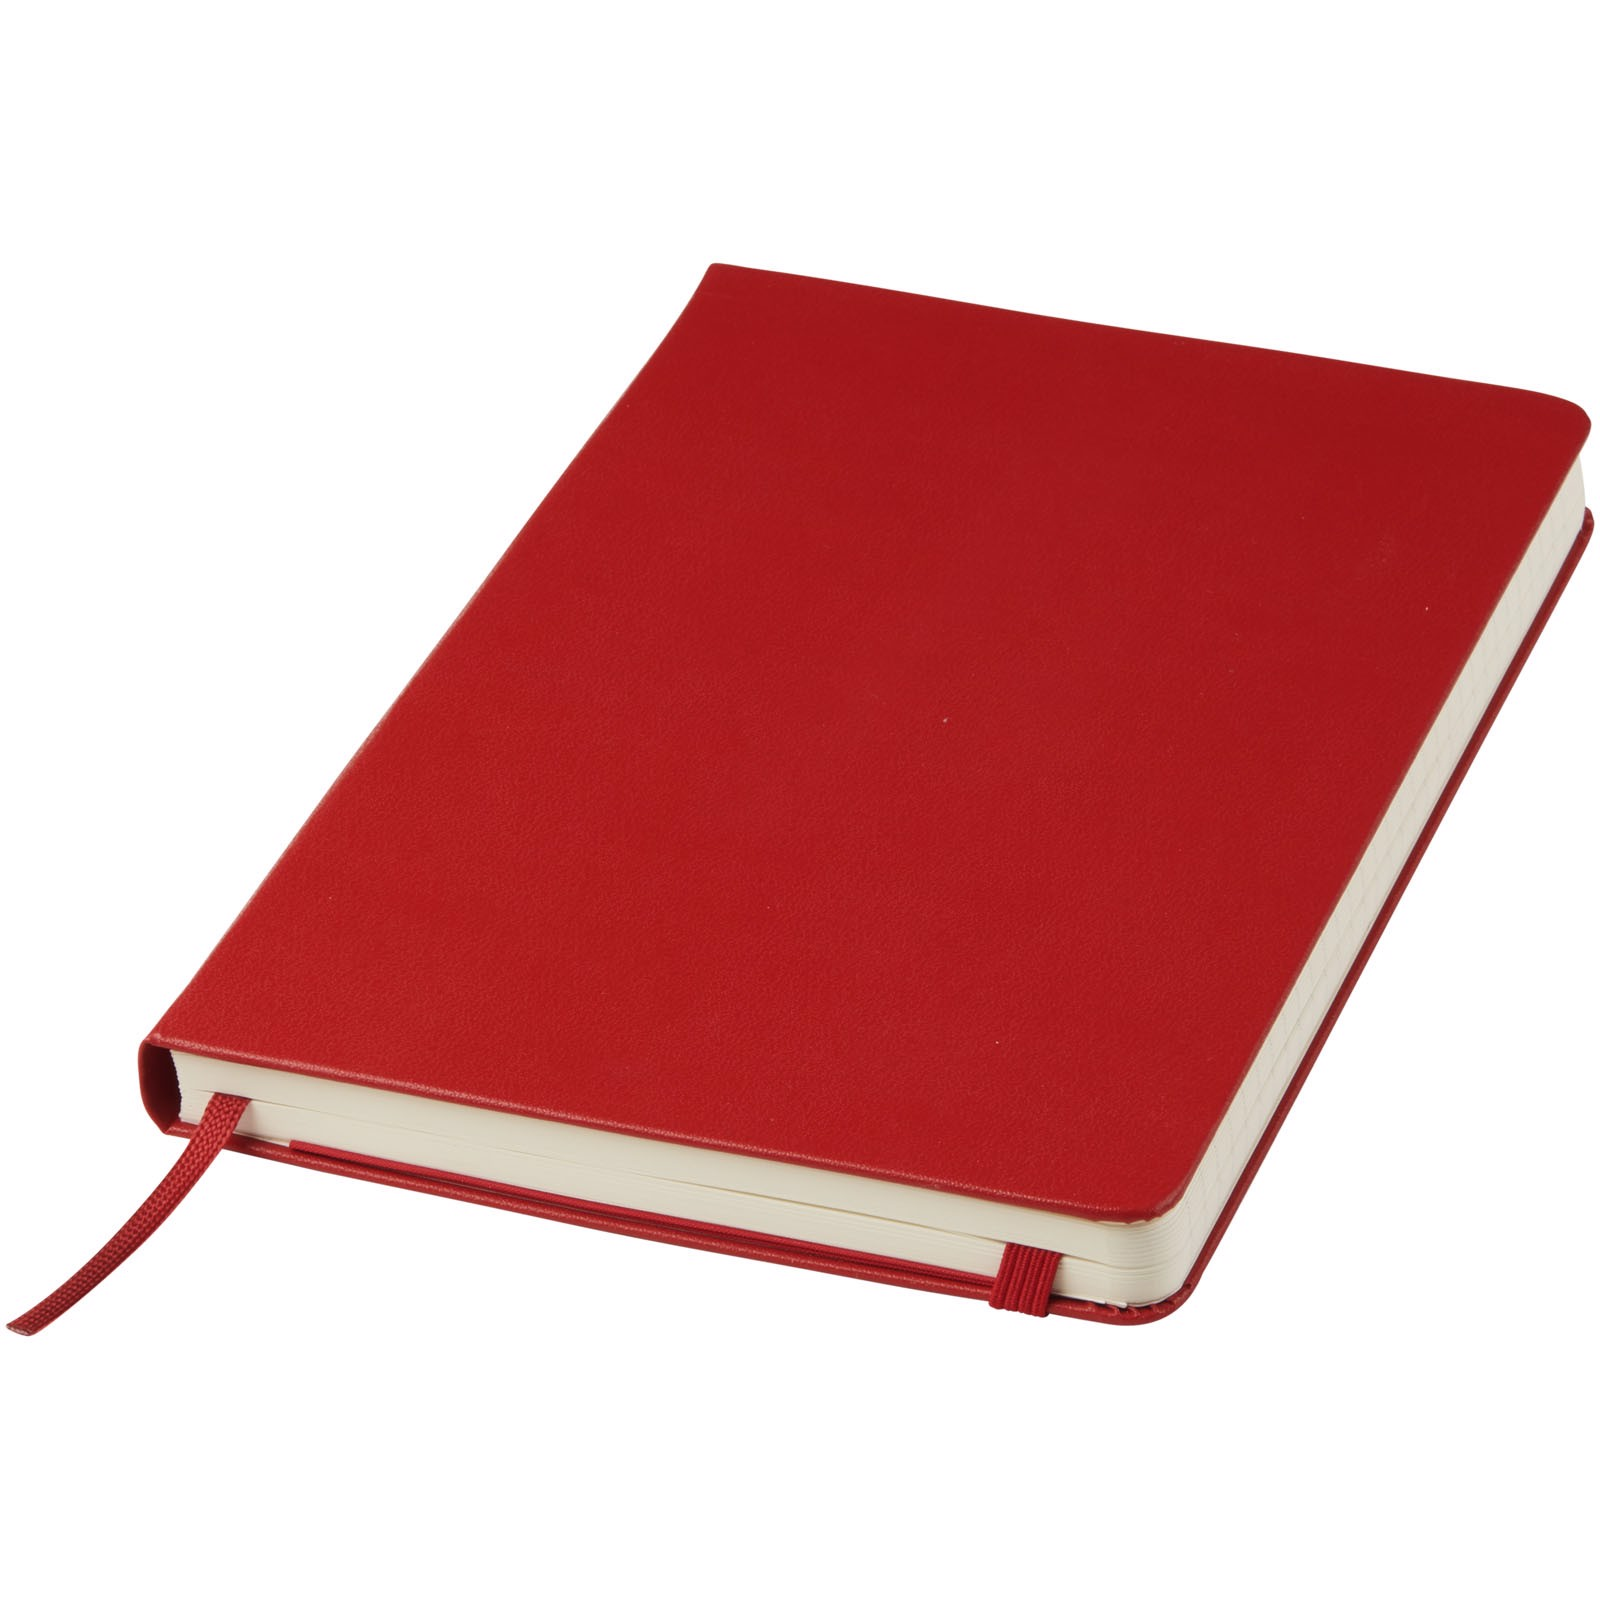 Classic L hard cover notebook - plain - Scarlet red